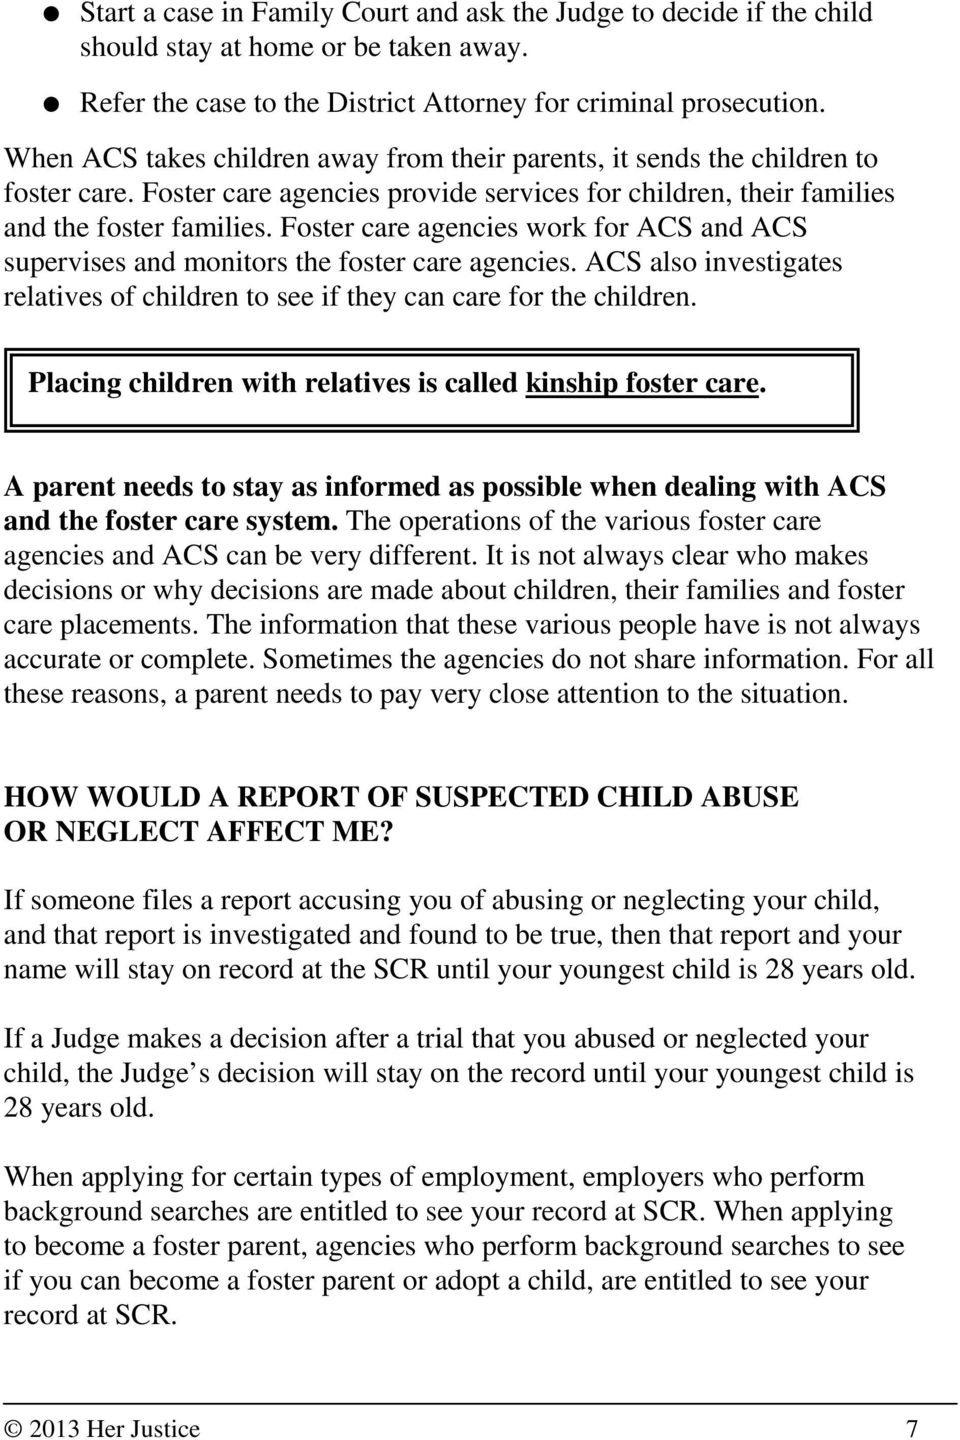 Foster care agencies work for ACS and ACS supervises and monitors the foster care agencies. ACS also investigates relatives of children to see if they can care for the children.